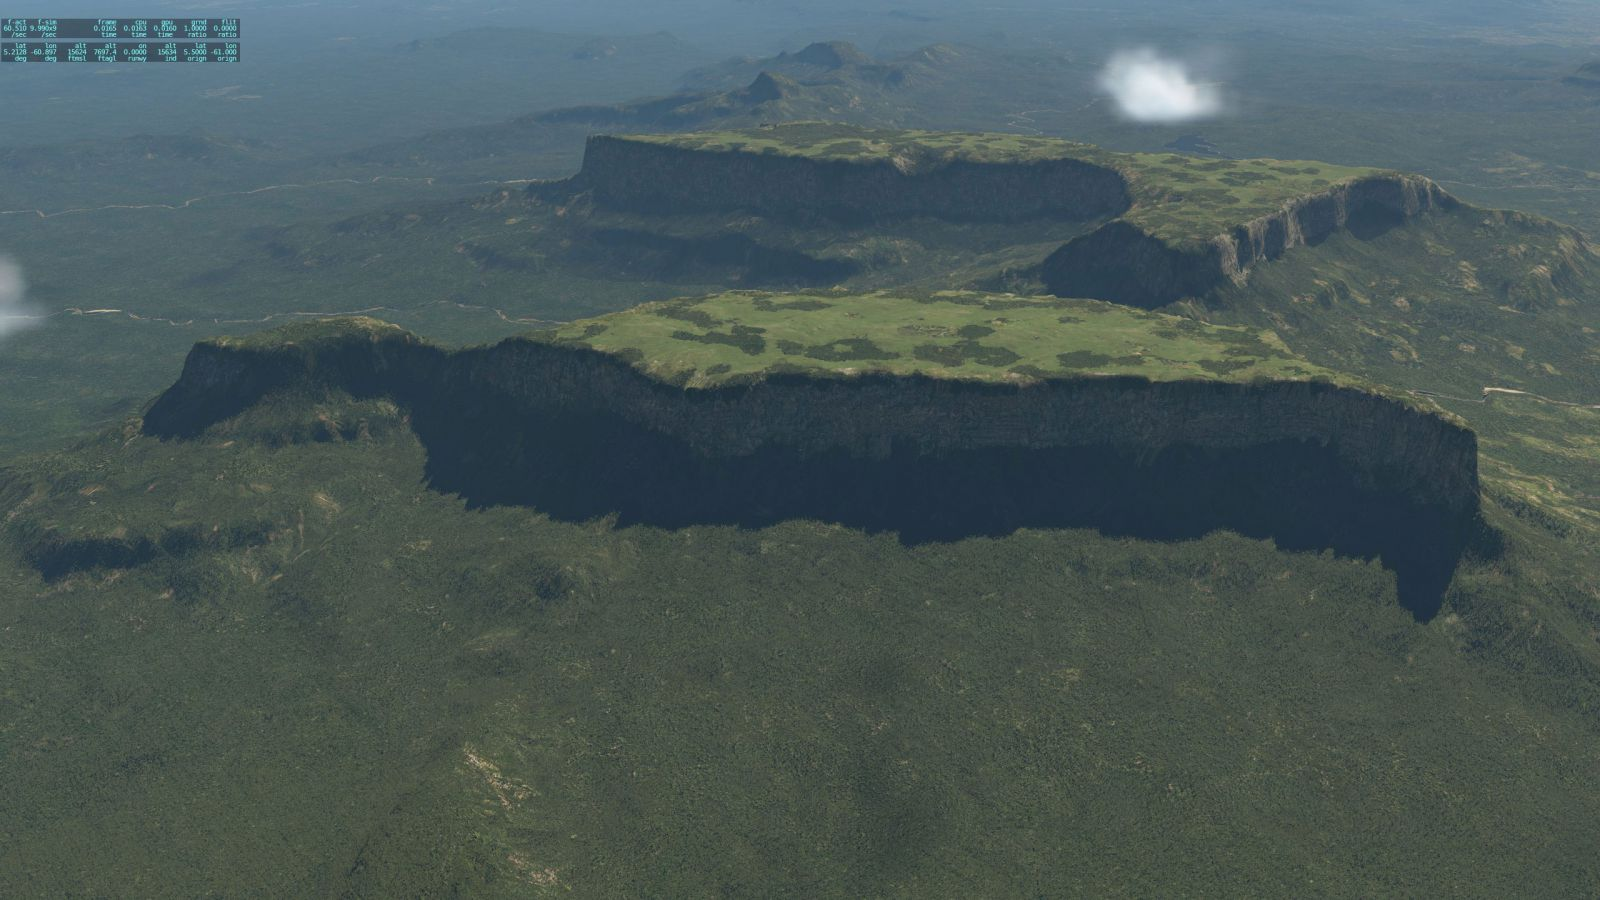 HD Mesh Scenery v4 Downloads for X-Plane 11